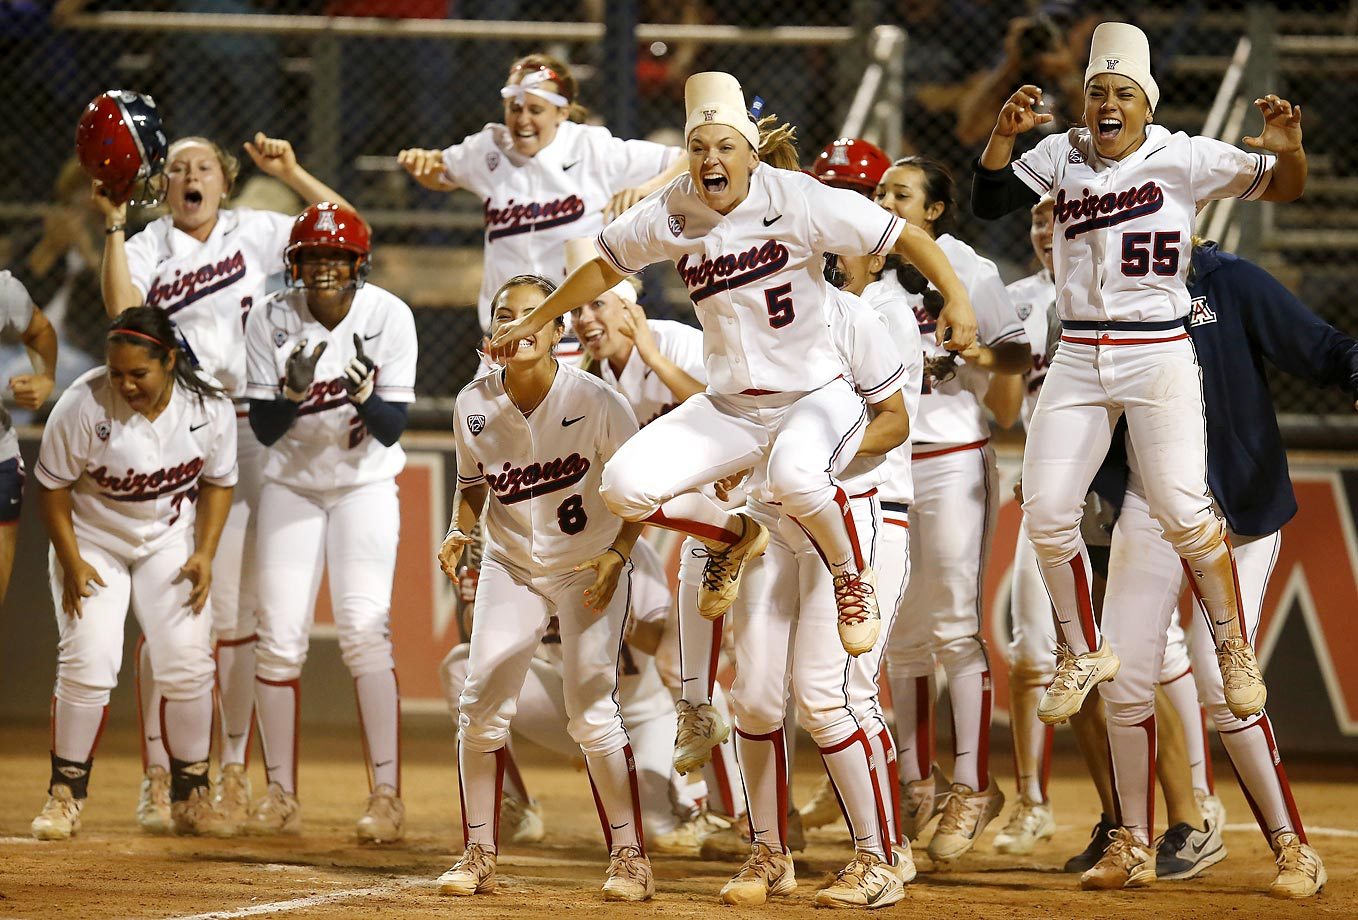 Arizona celebrates after Chelsea Goodacre tied the game with a two-run home run against Minnesota during an NCAA college softball tournament regional championship game.